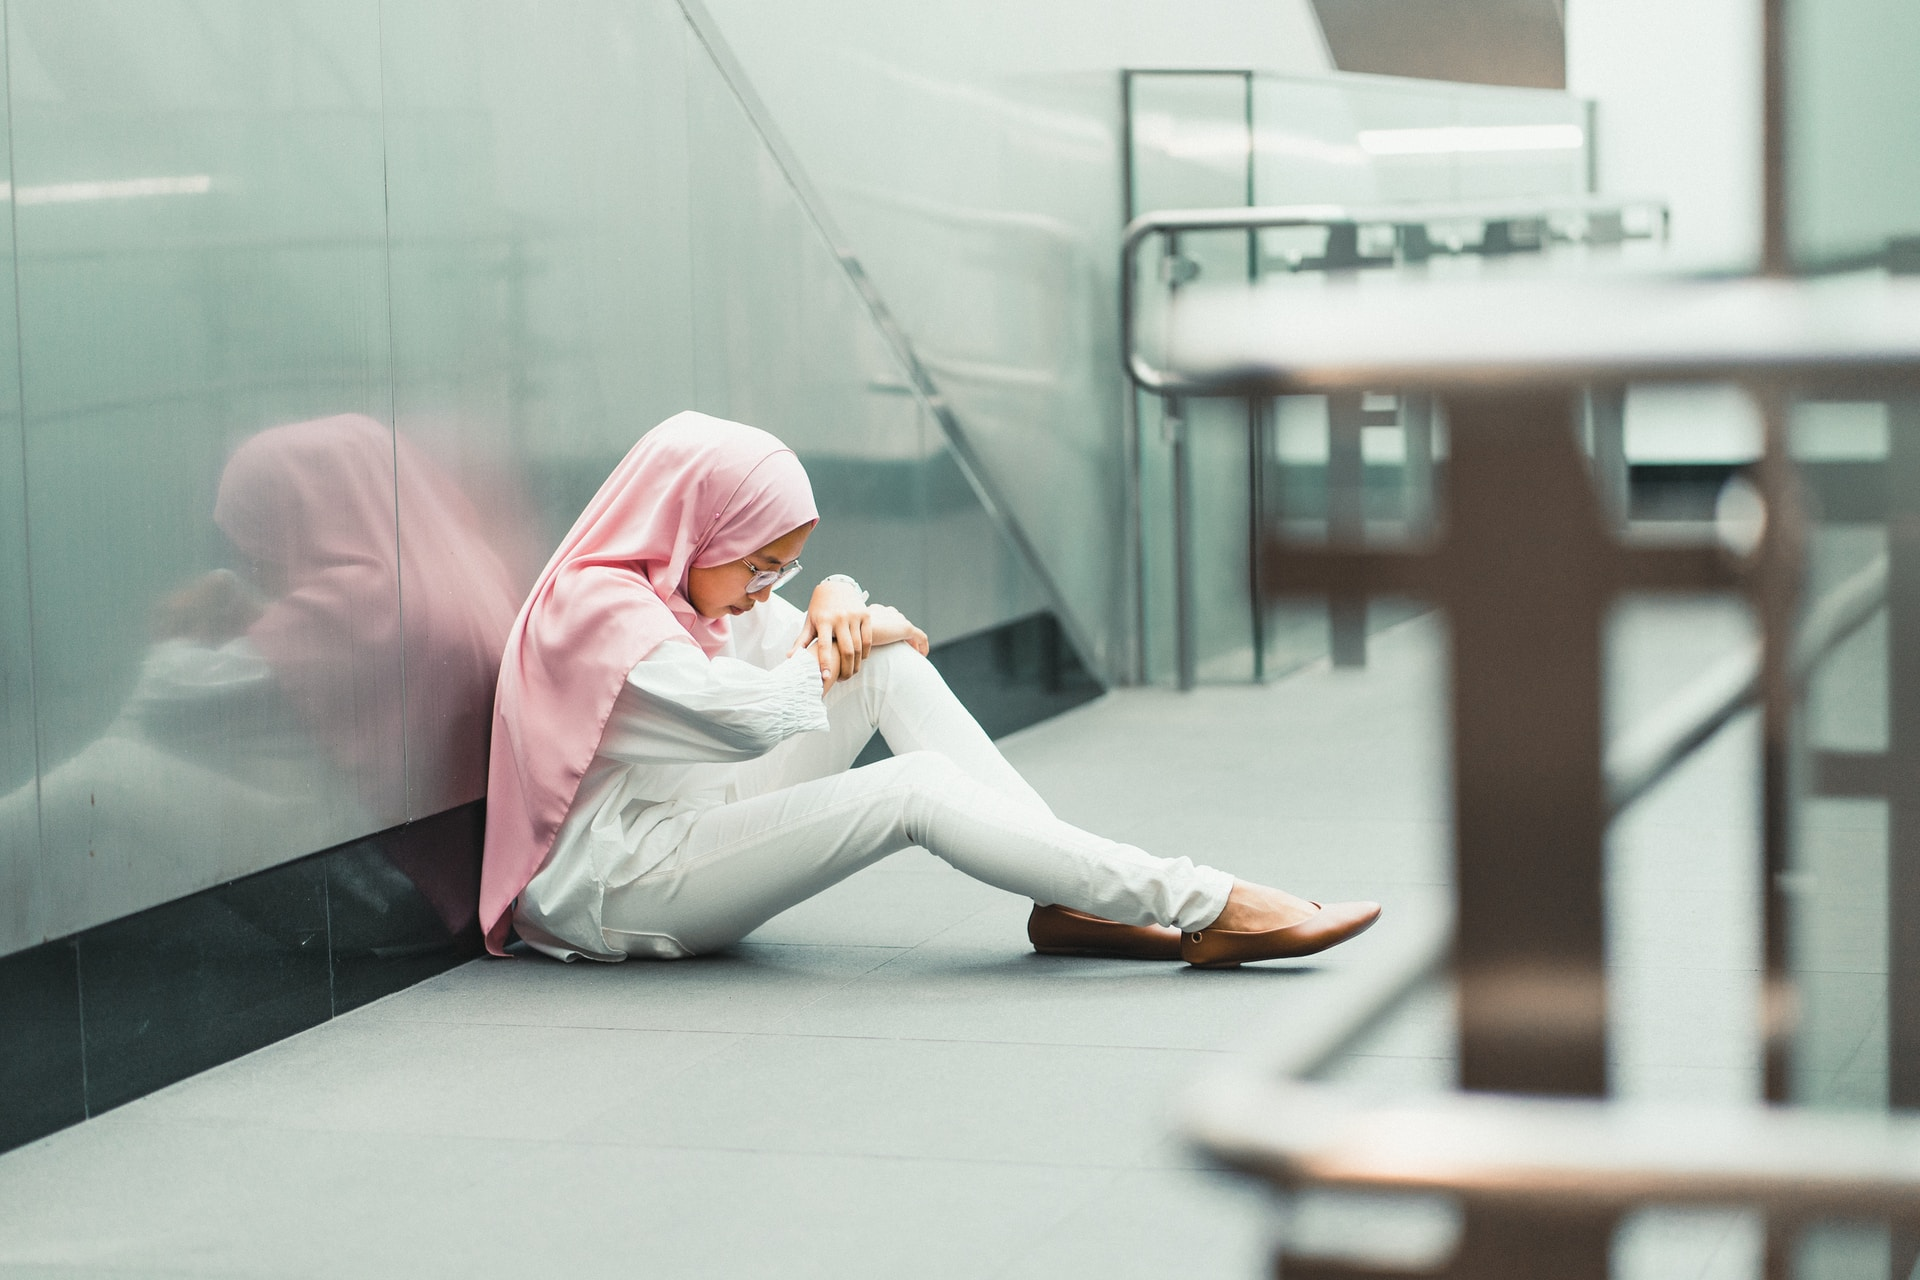 woman sitting on floor while leaning on glass wall